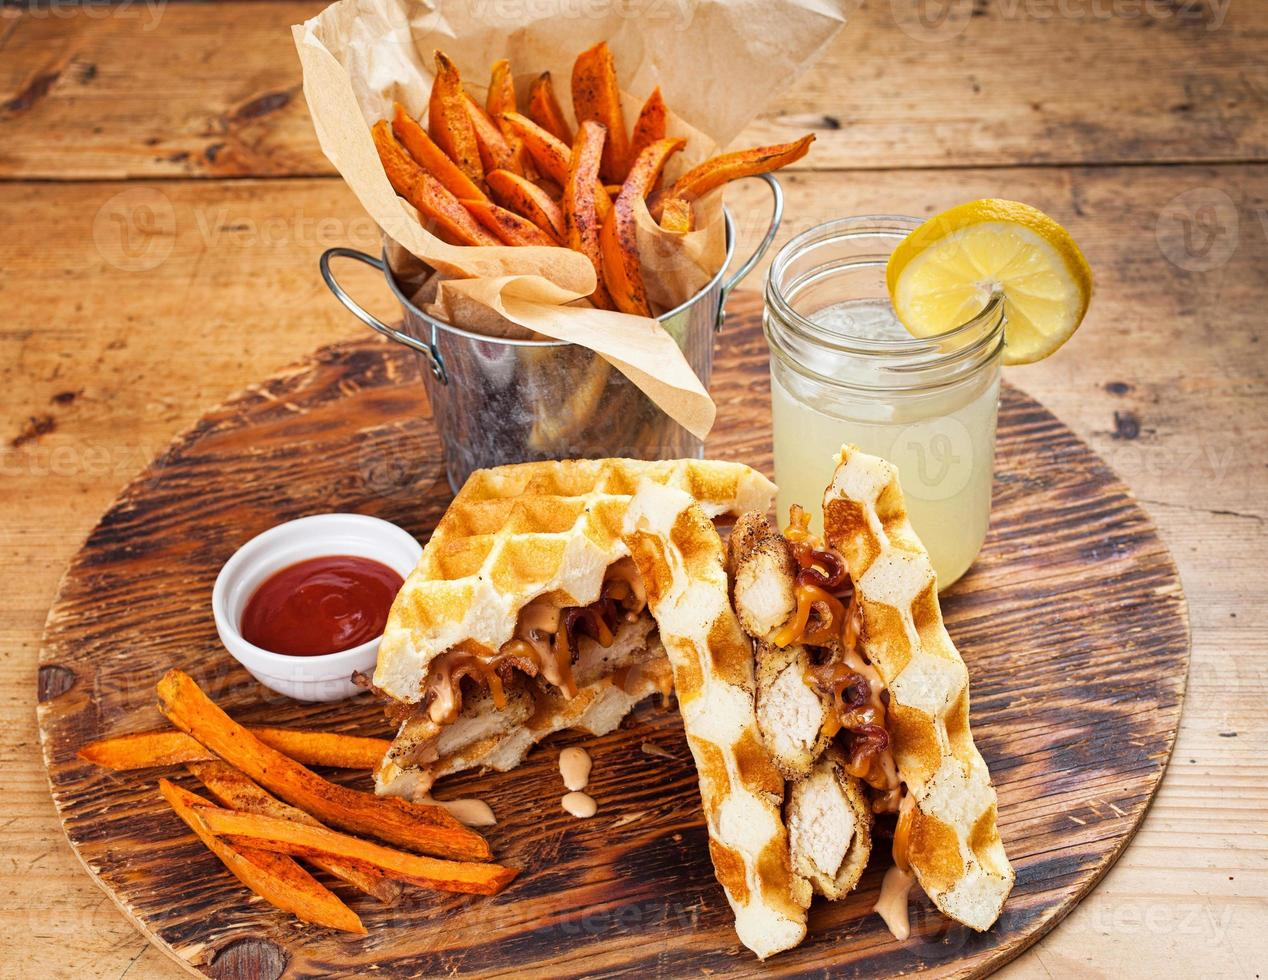 Chicken and Waffle Sandwich With Fries photo